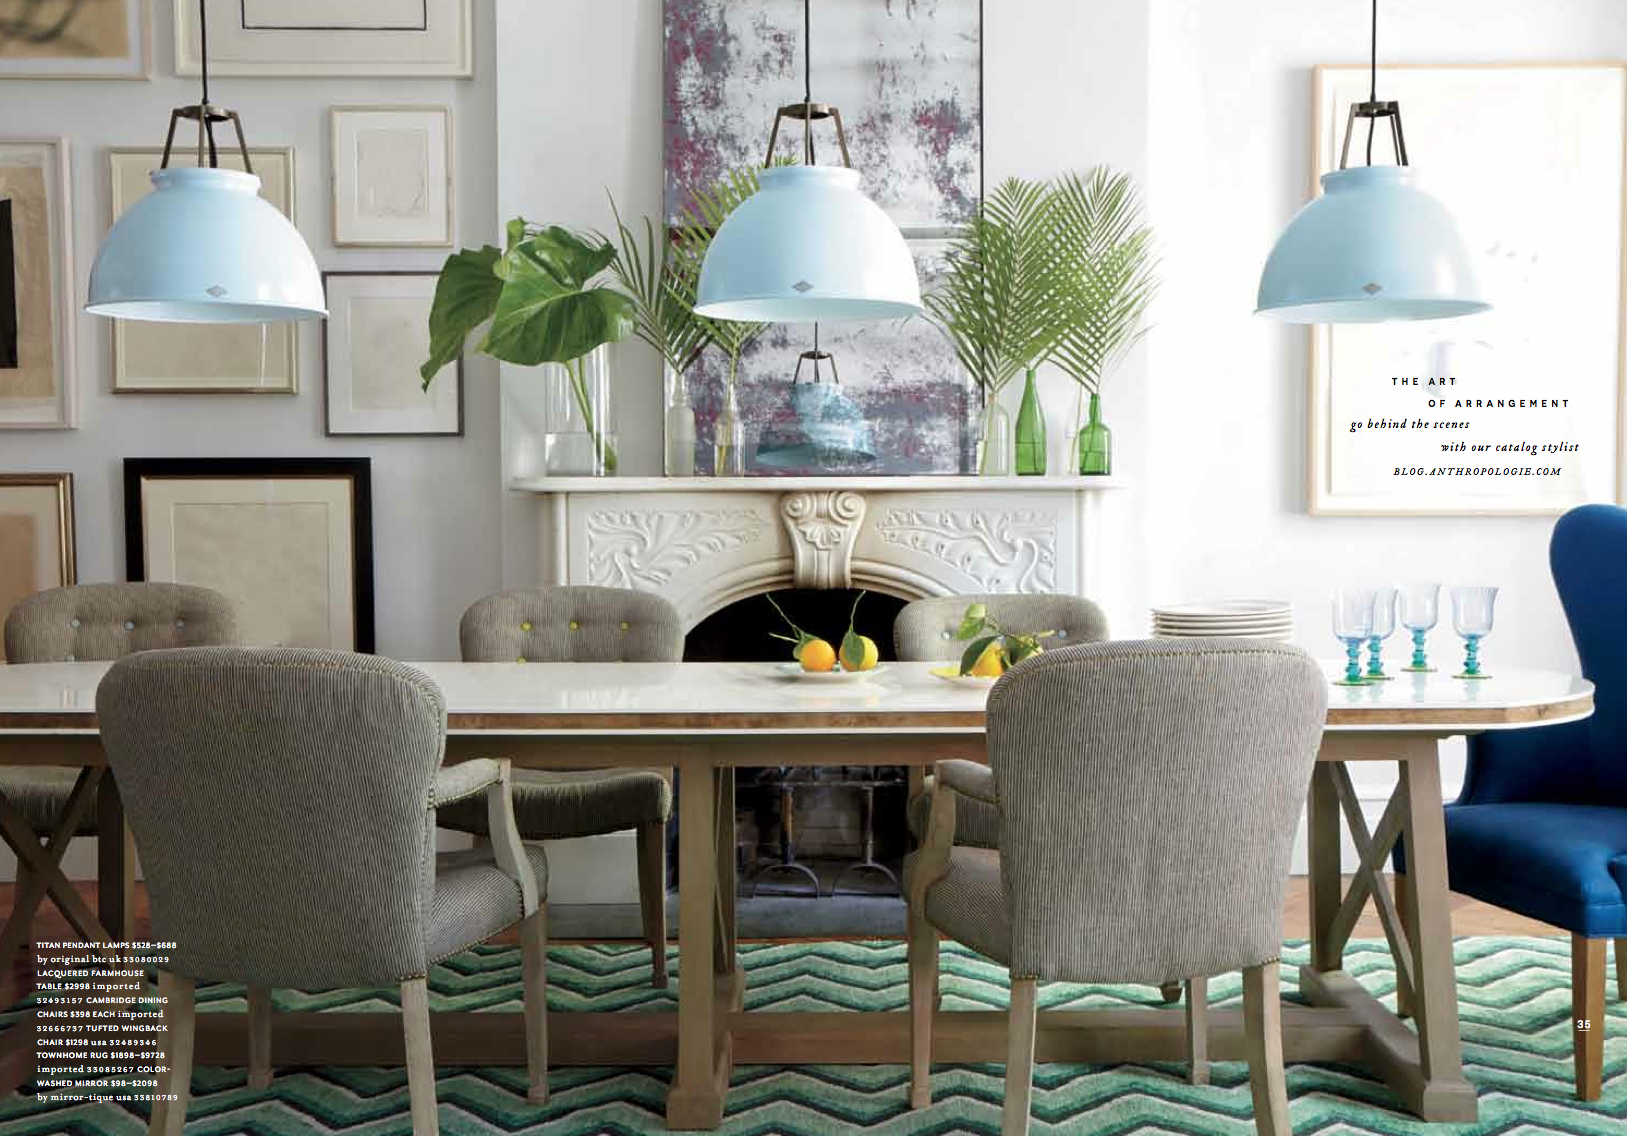 anthropologie house and home photo shoot with simon watson and county fair productions 26